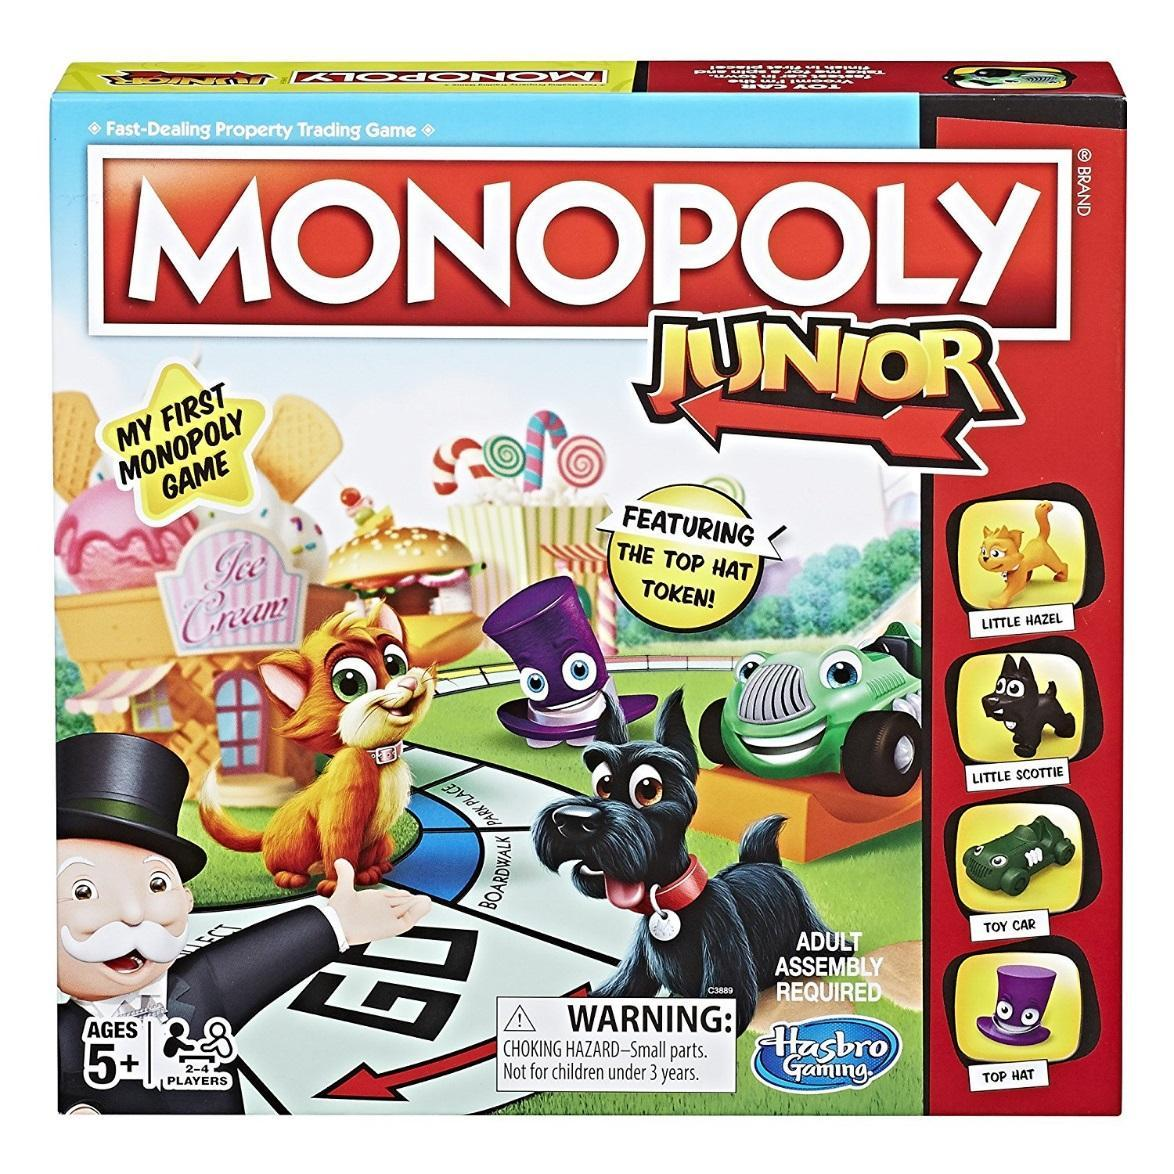 https://www.experian.com/blogs/ask-experian/wp-content/uploads/monopoly_junior.jpg